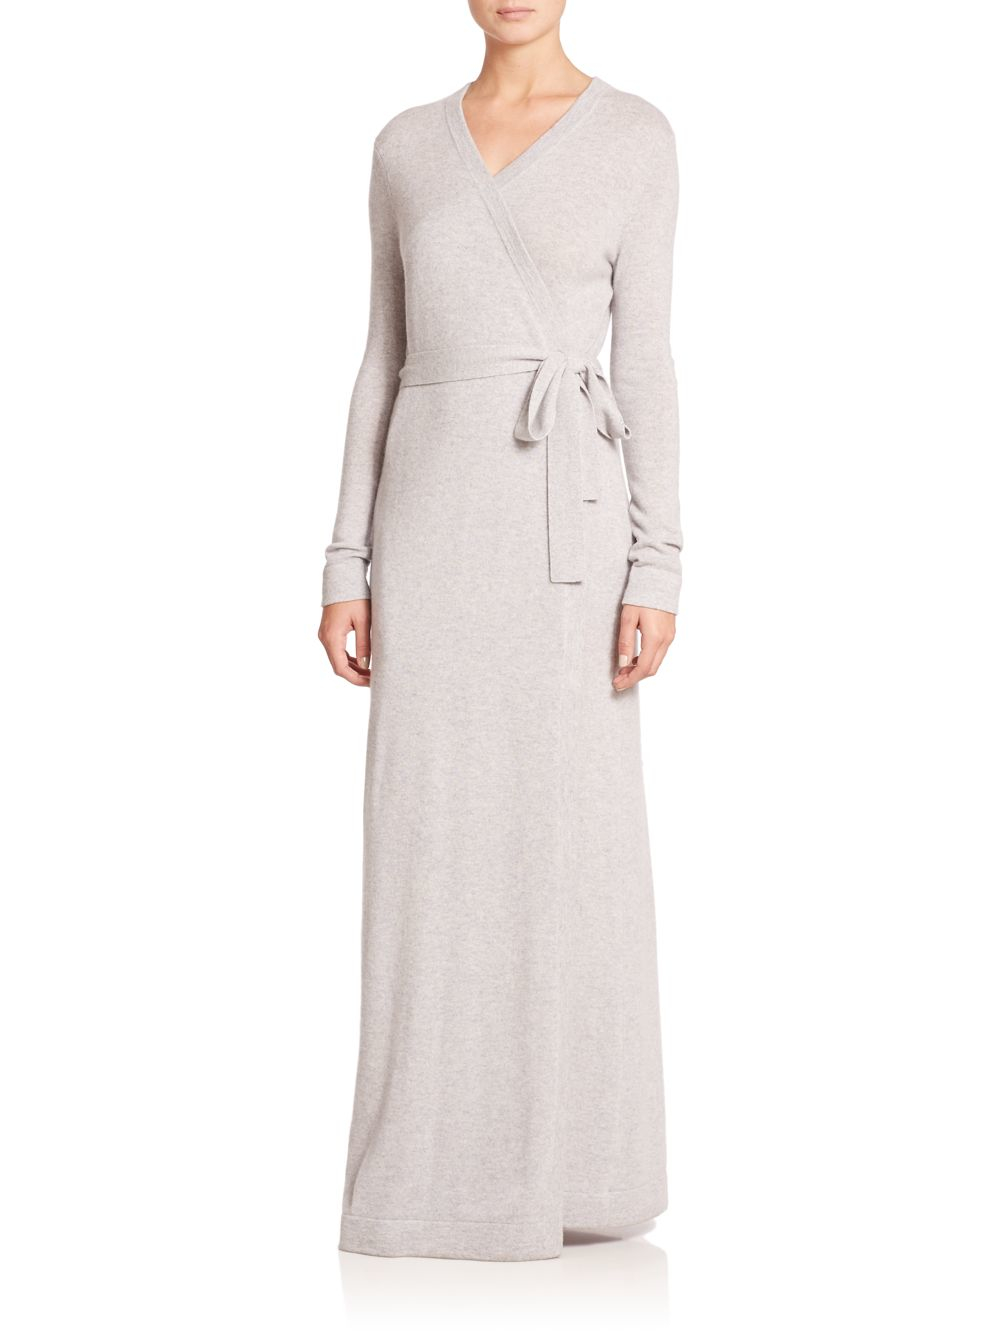 Saks fifth avenue long cashmere robe in gray lyst for Saks 5th avenue robes de mariage